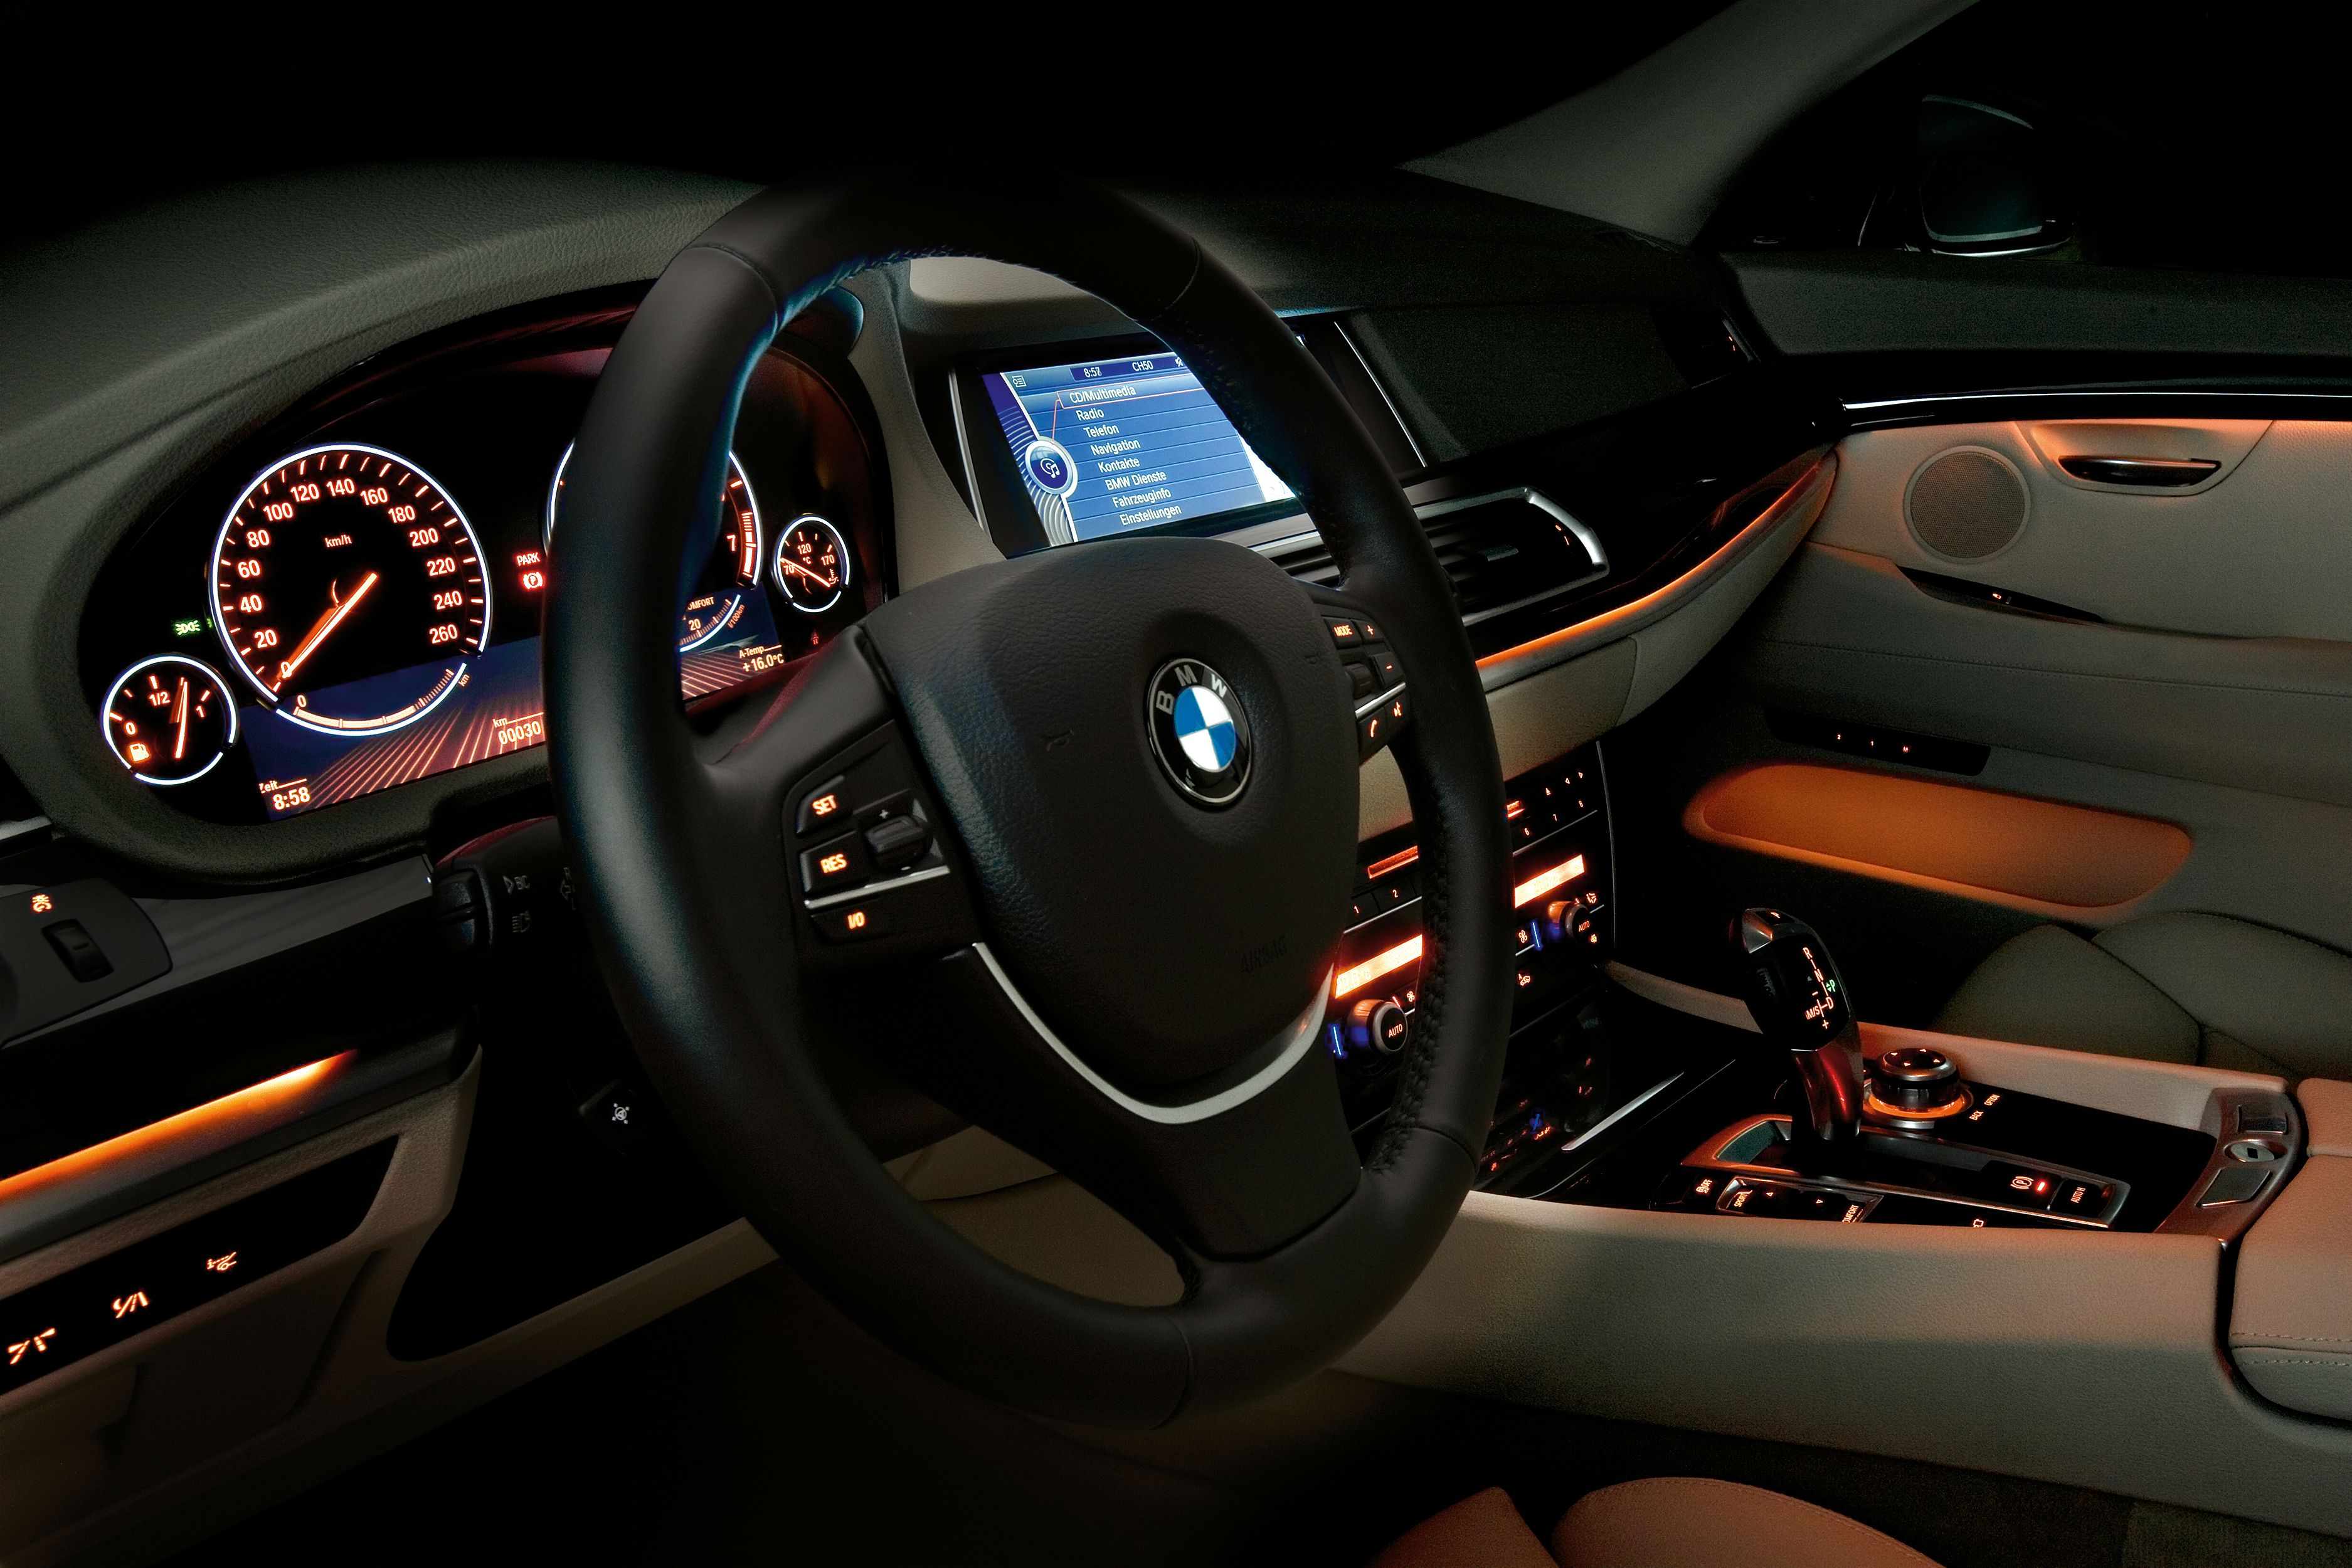 Salon Of Bmw 5 Series Gt During The Night Con Imagenes Bmw